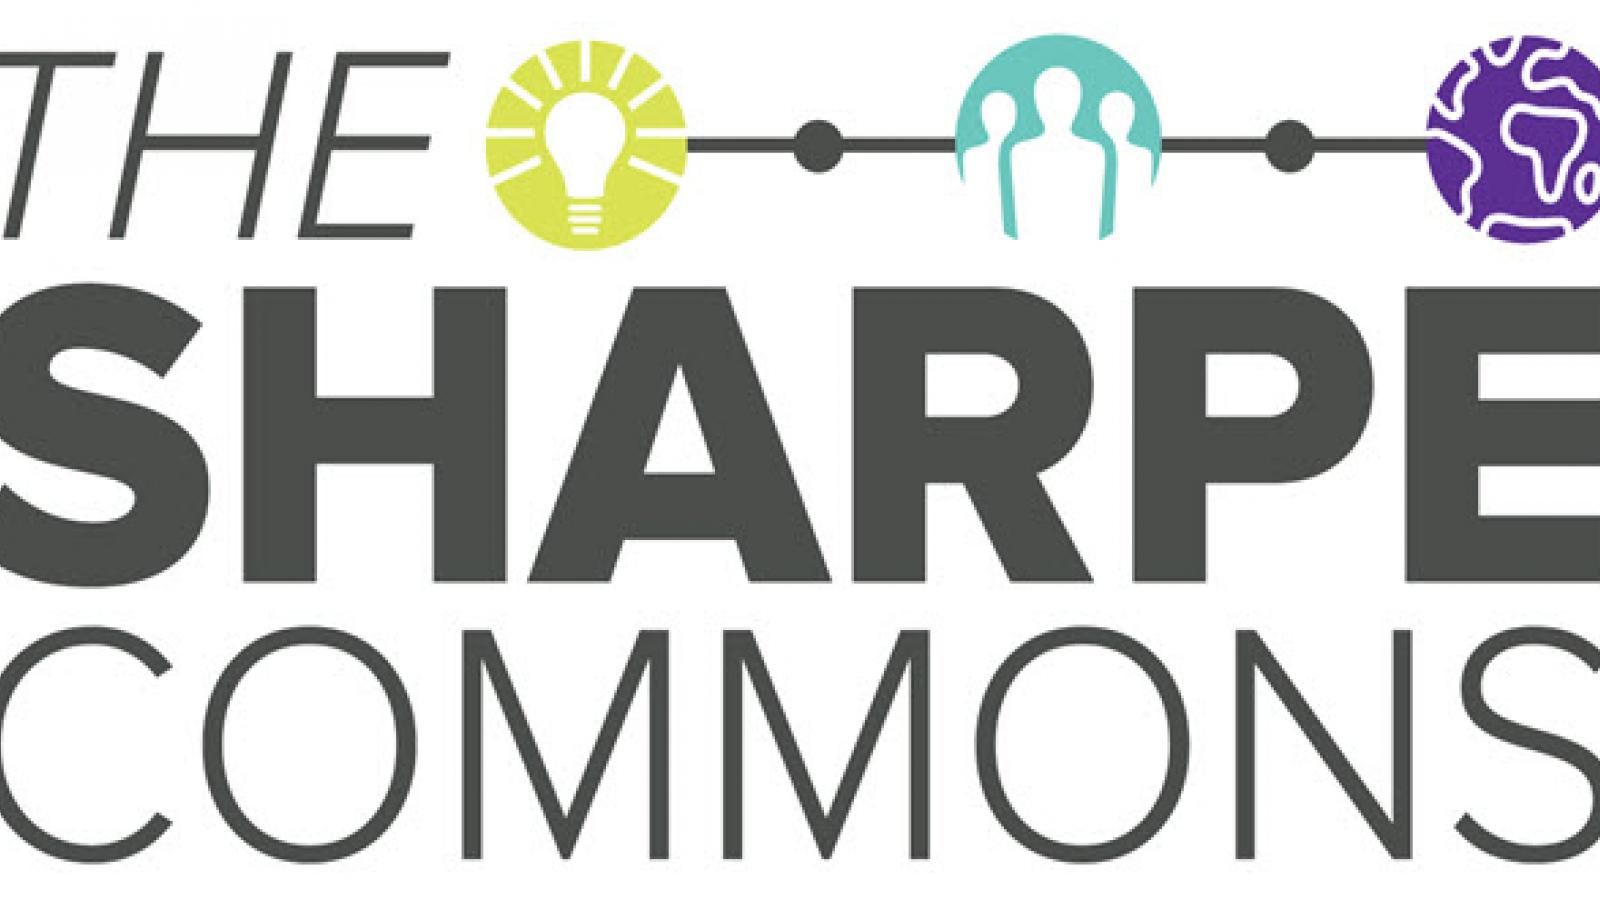 The Sharpe Commons logo